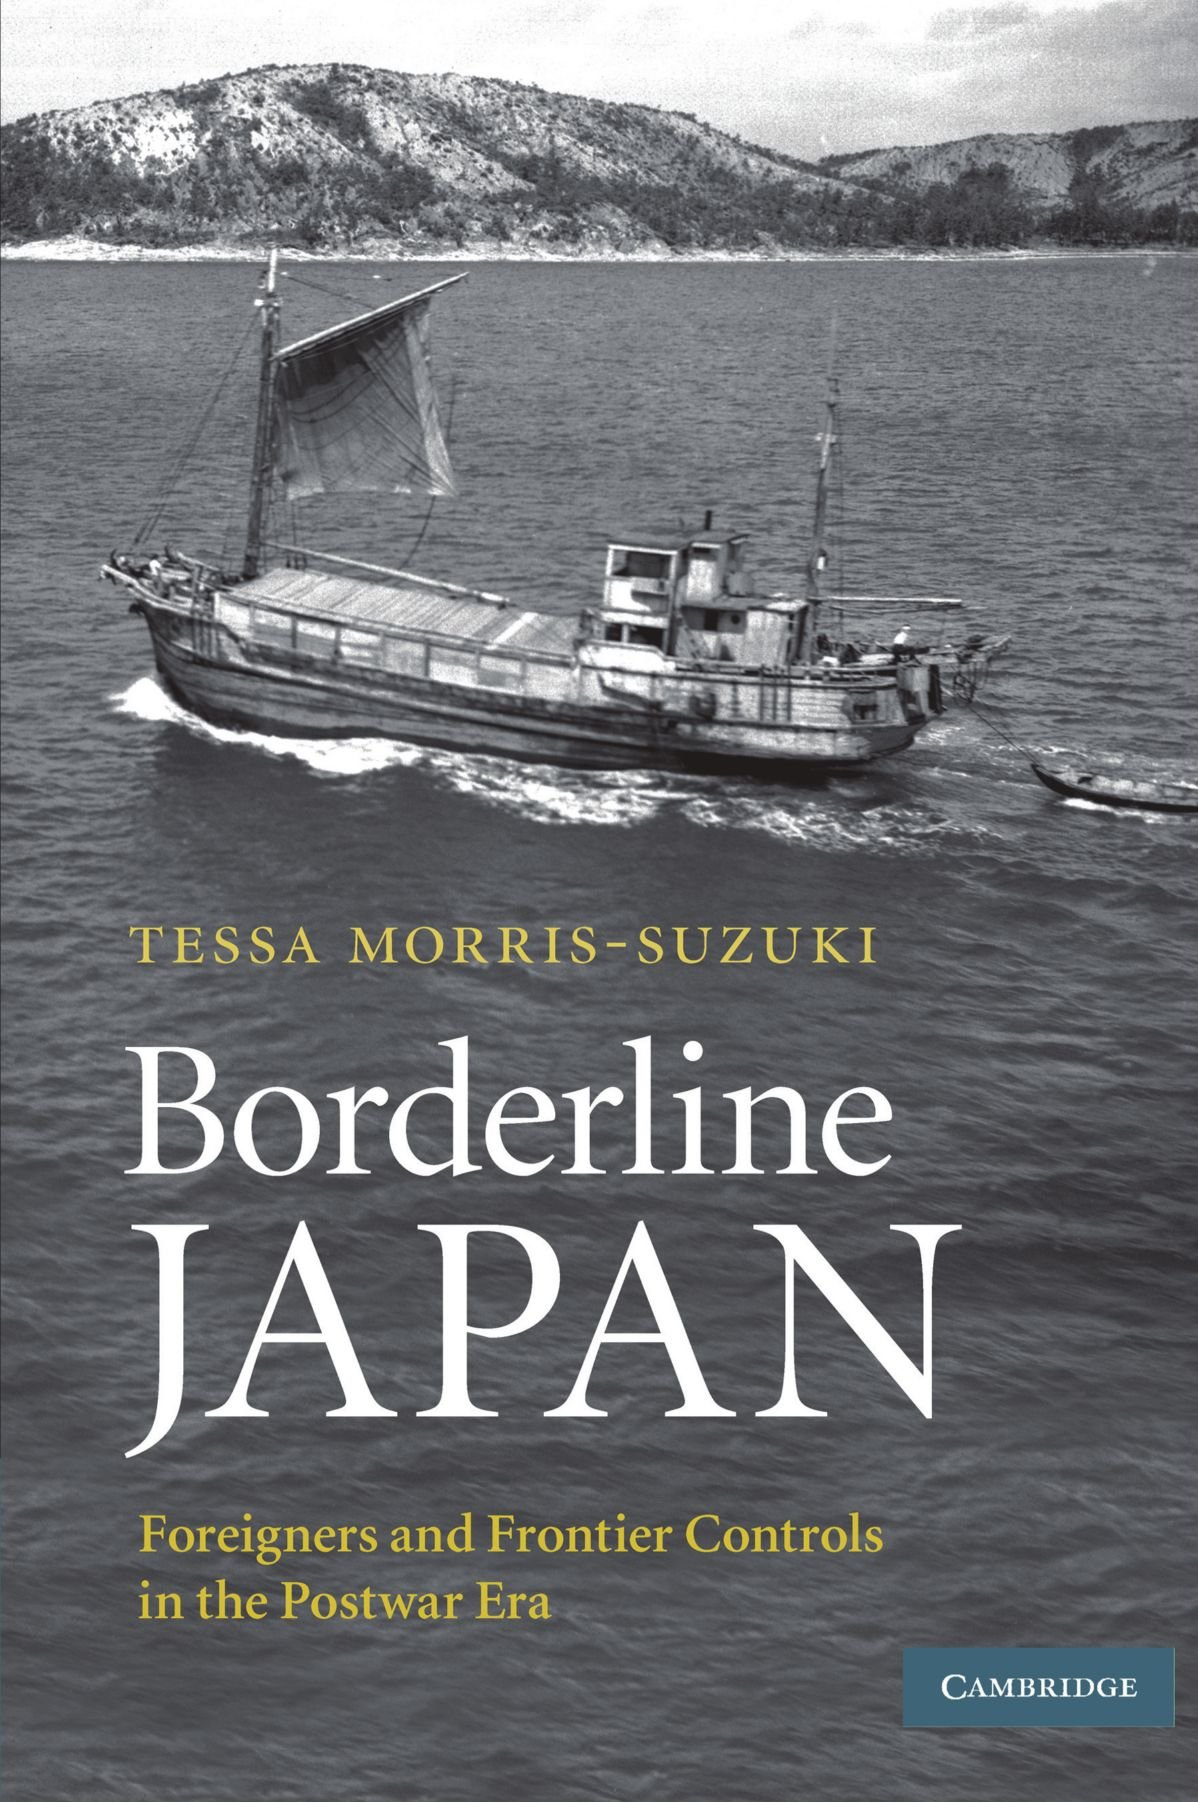 Borderline Japan: Foreigners and Frontier Controls in the Postwar Era pdf